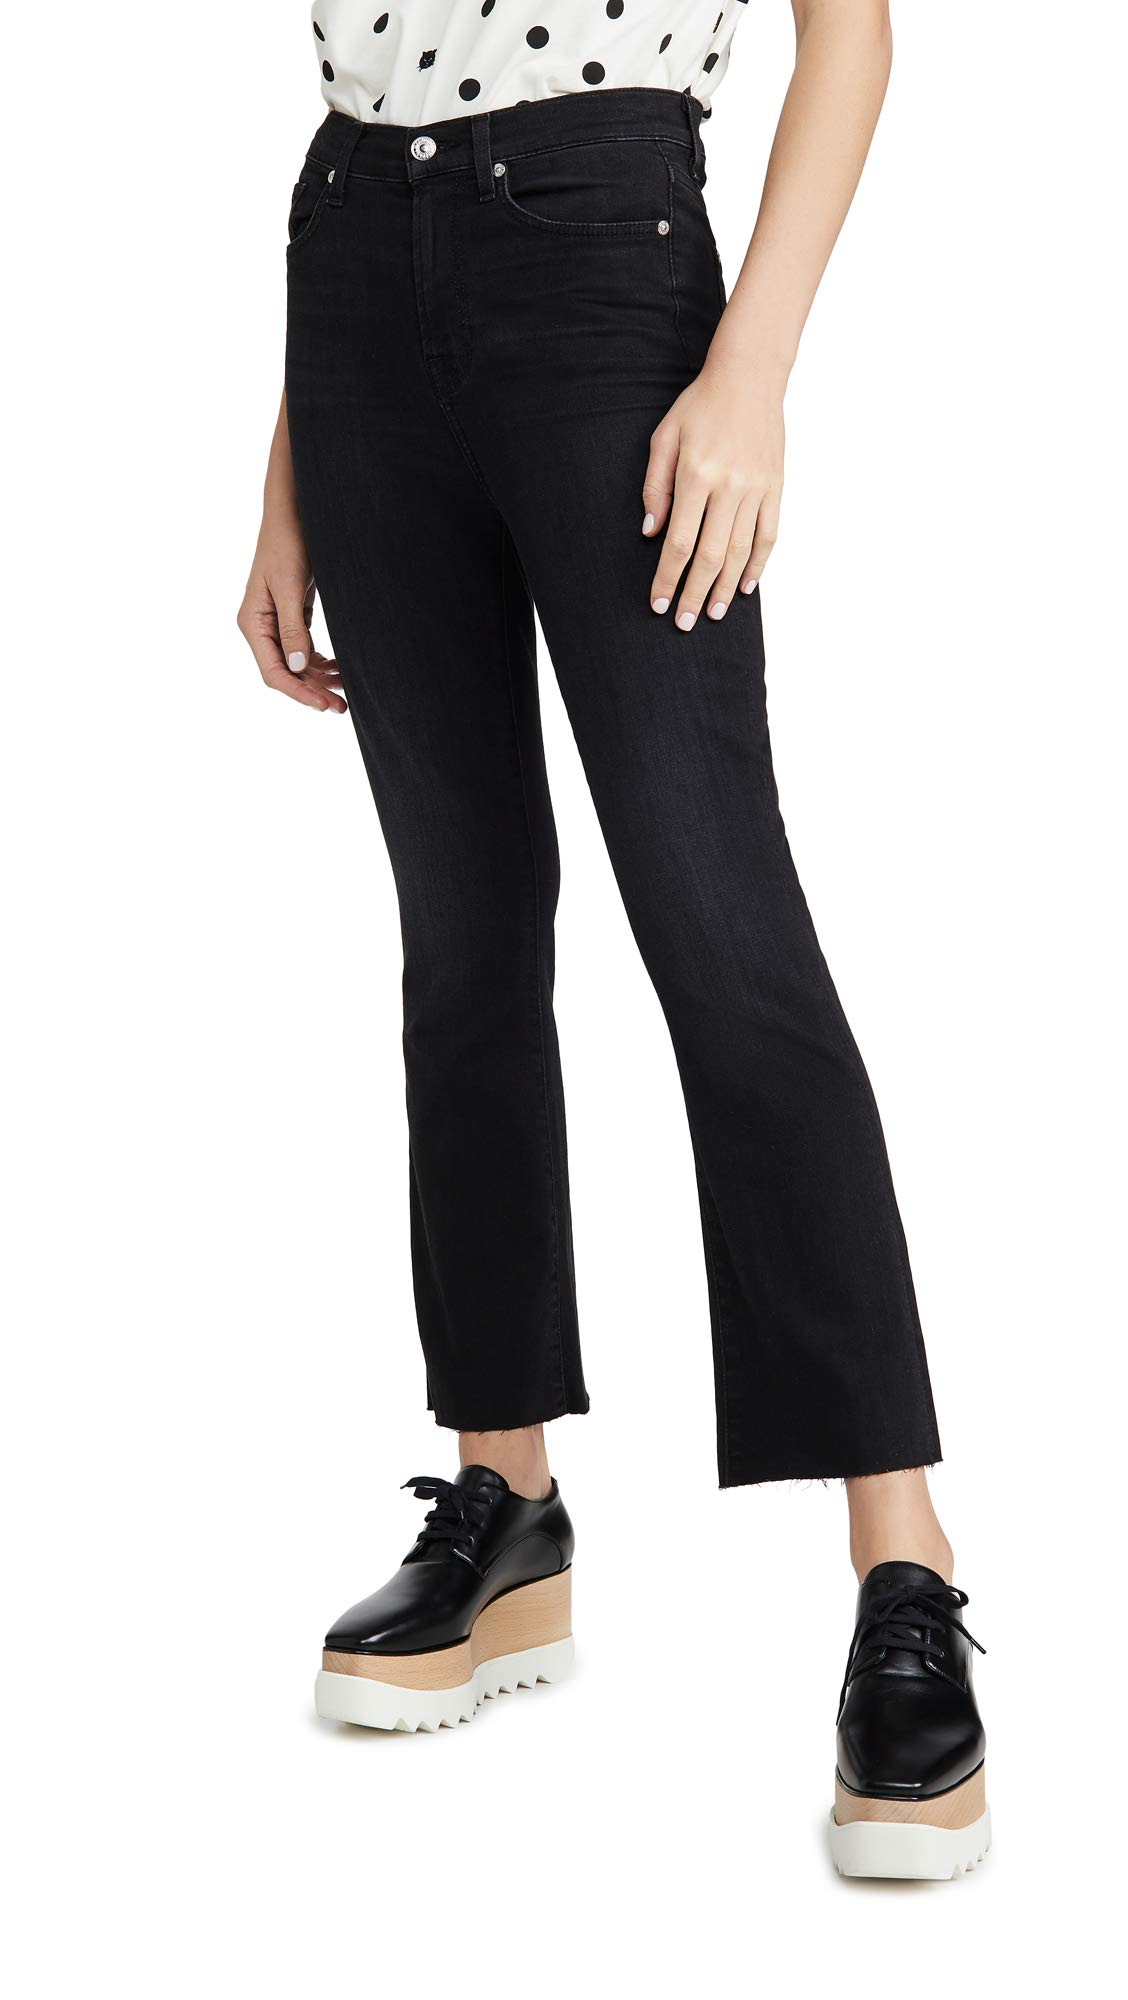 7 For All Mankind Women's High Rise Slim Kick Jeans